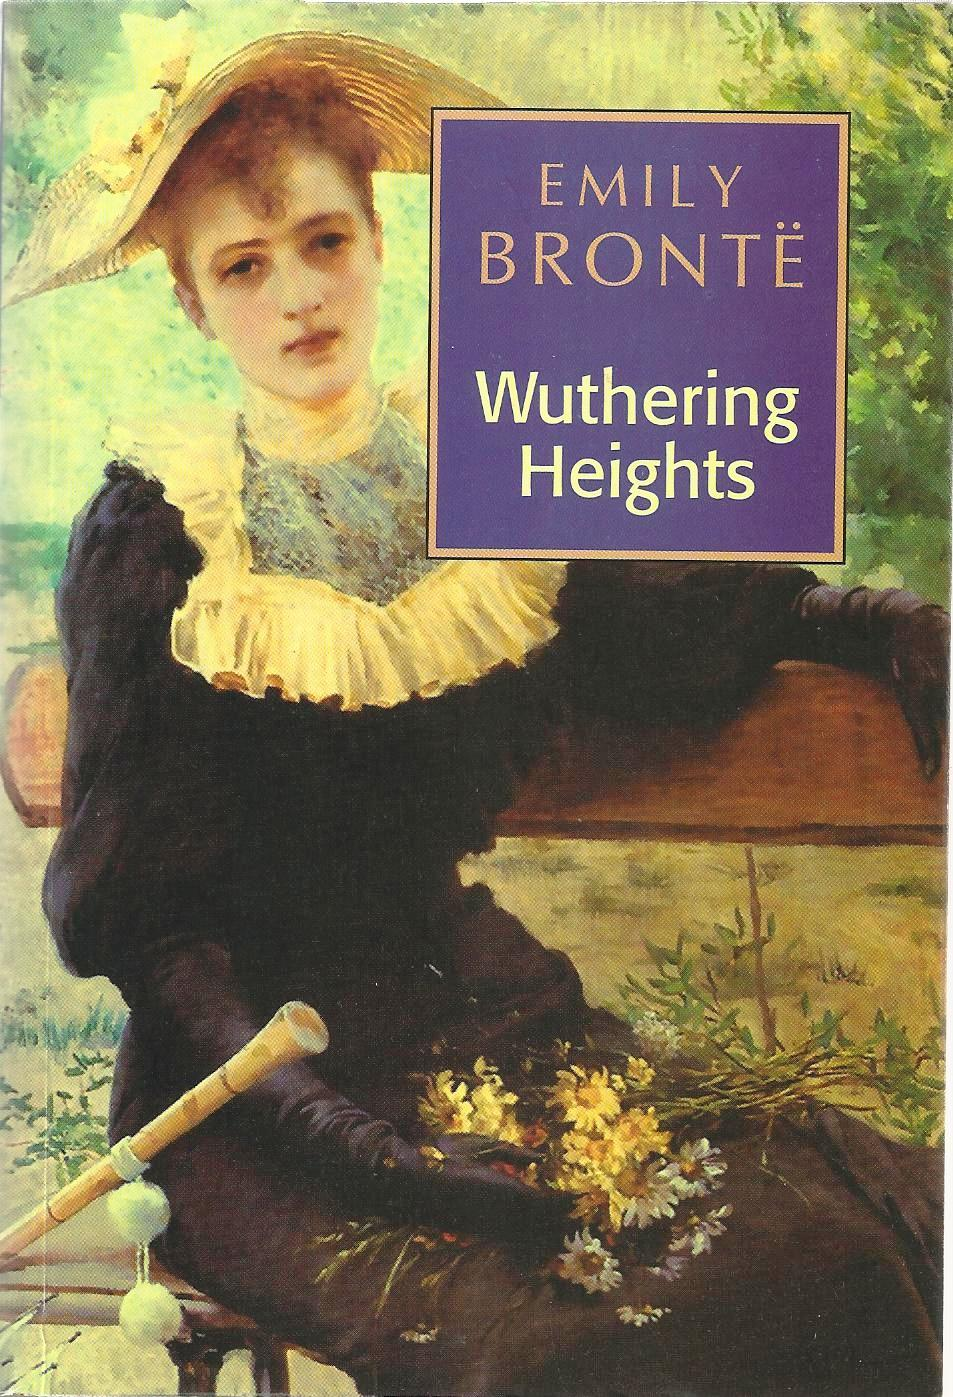 zealot readers wuthering heights by emily bronte having learnt from my teachers as it being one of the best classics english literature could possibly gift and having its abridged version as a child